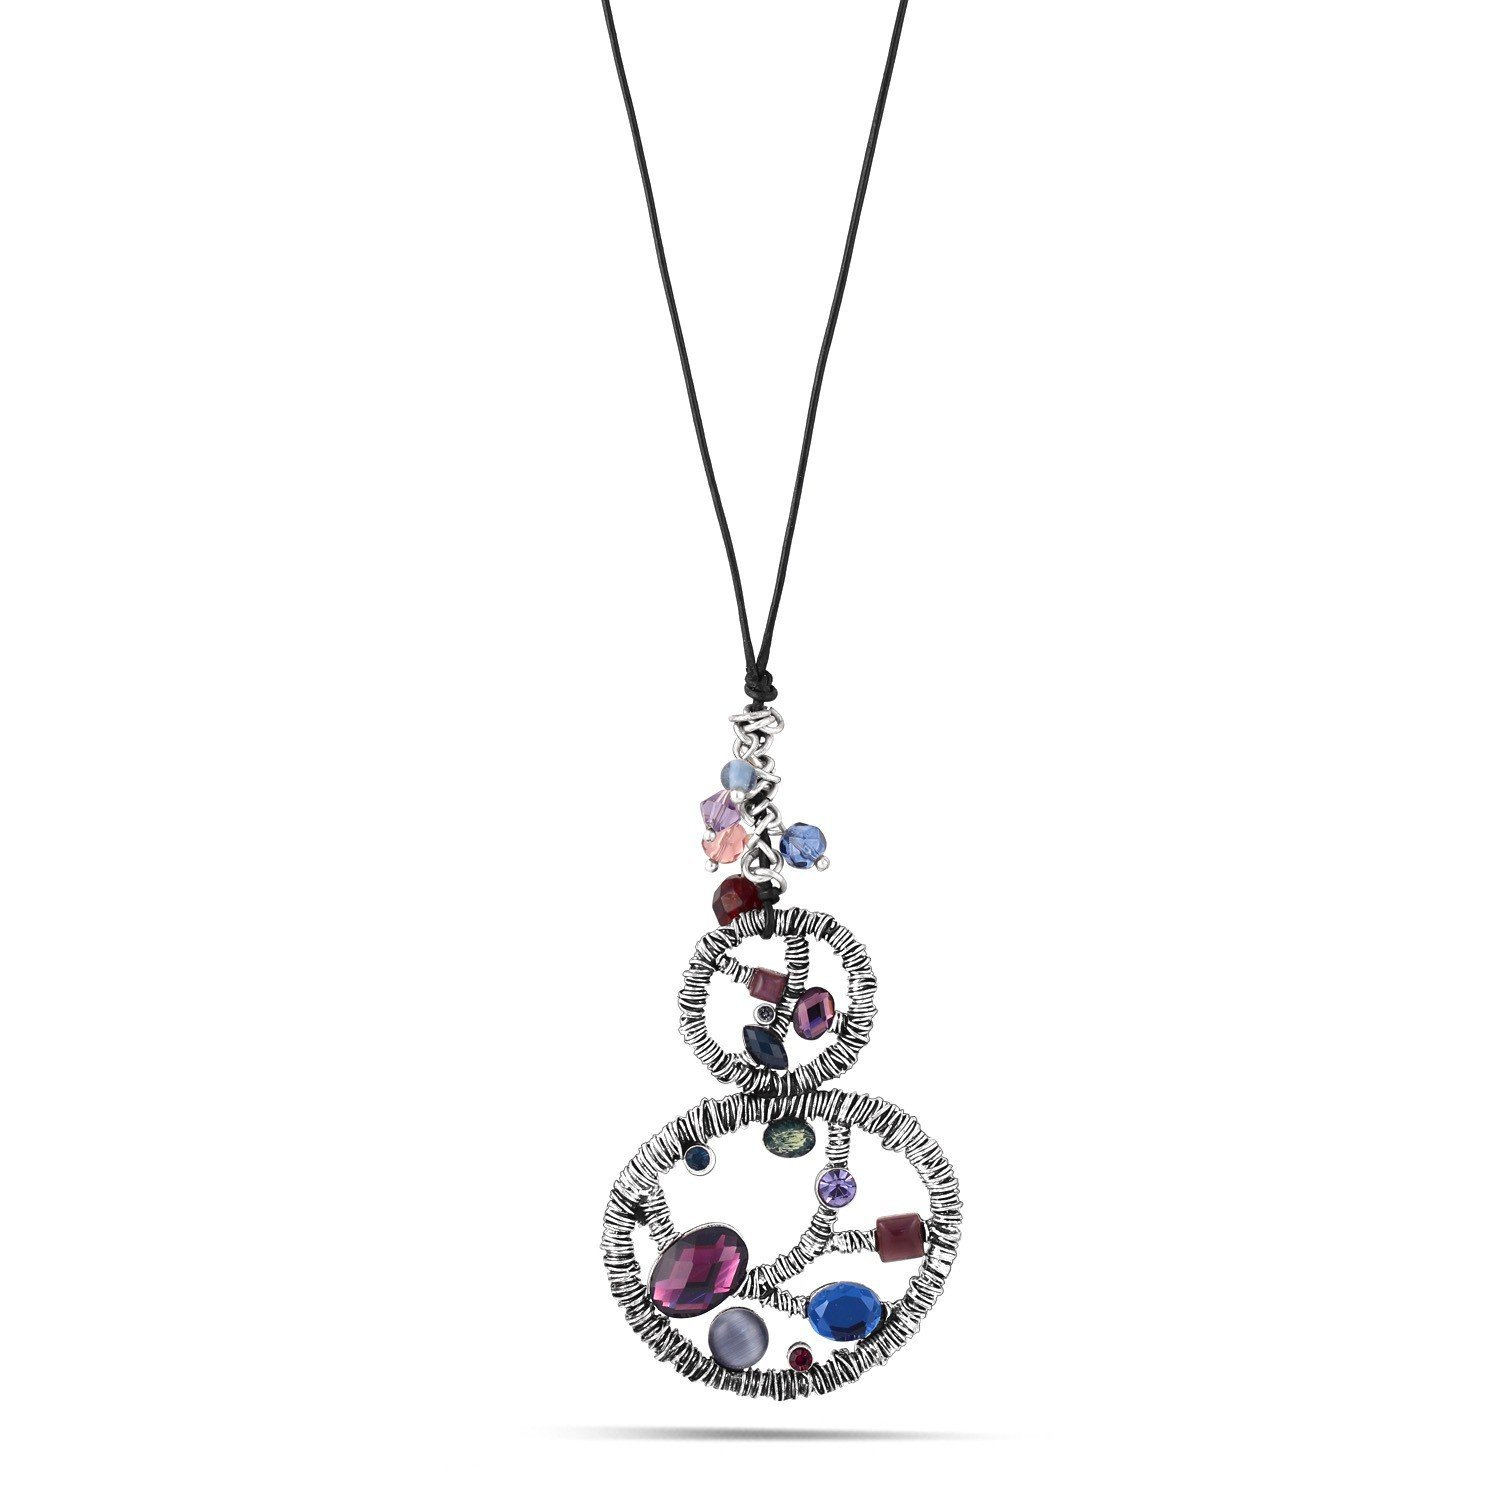 Silver-Tone Metal Multicolor Crystal Black Leather Chain Necklace